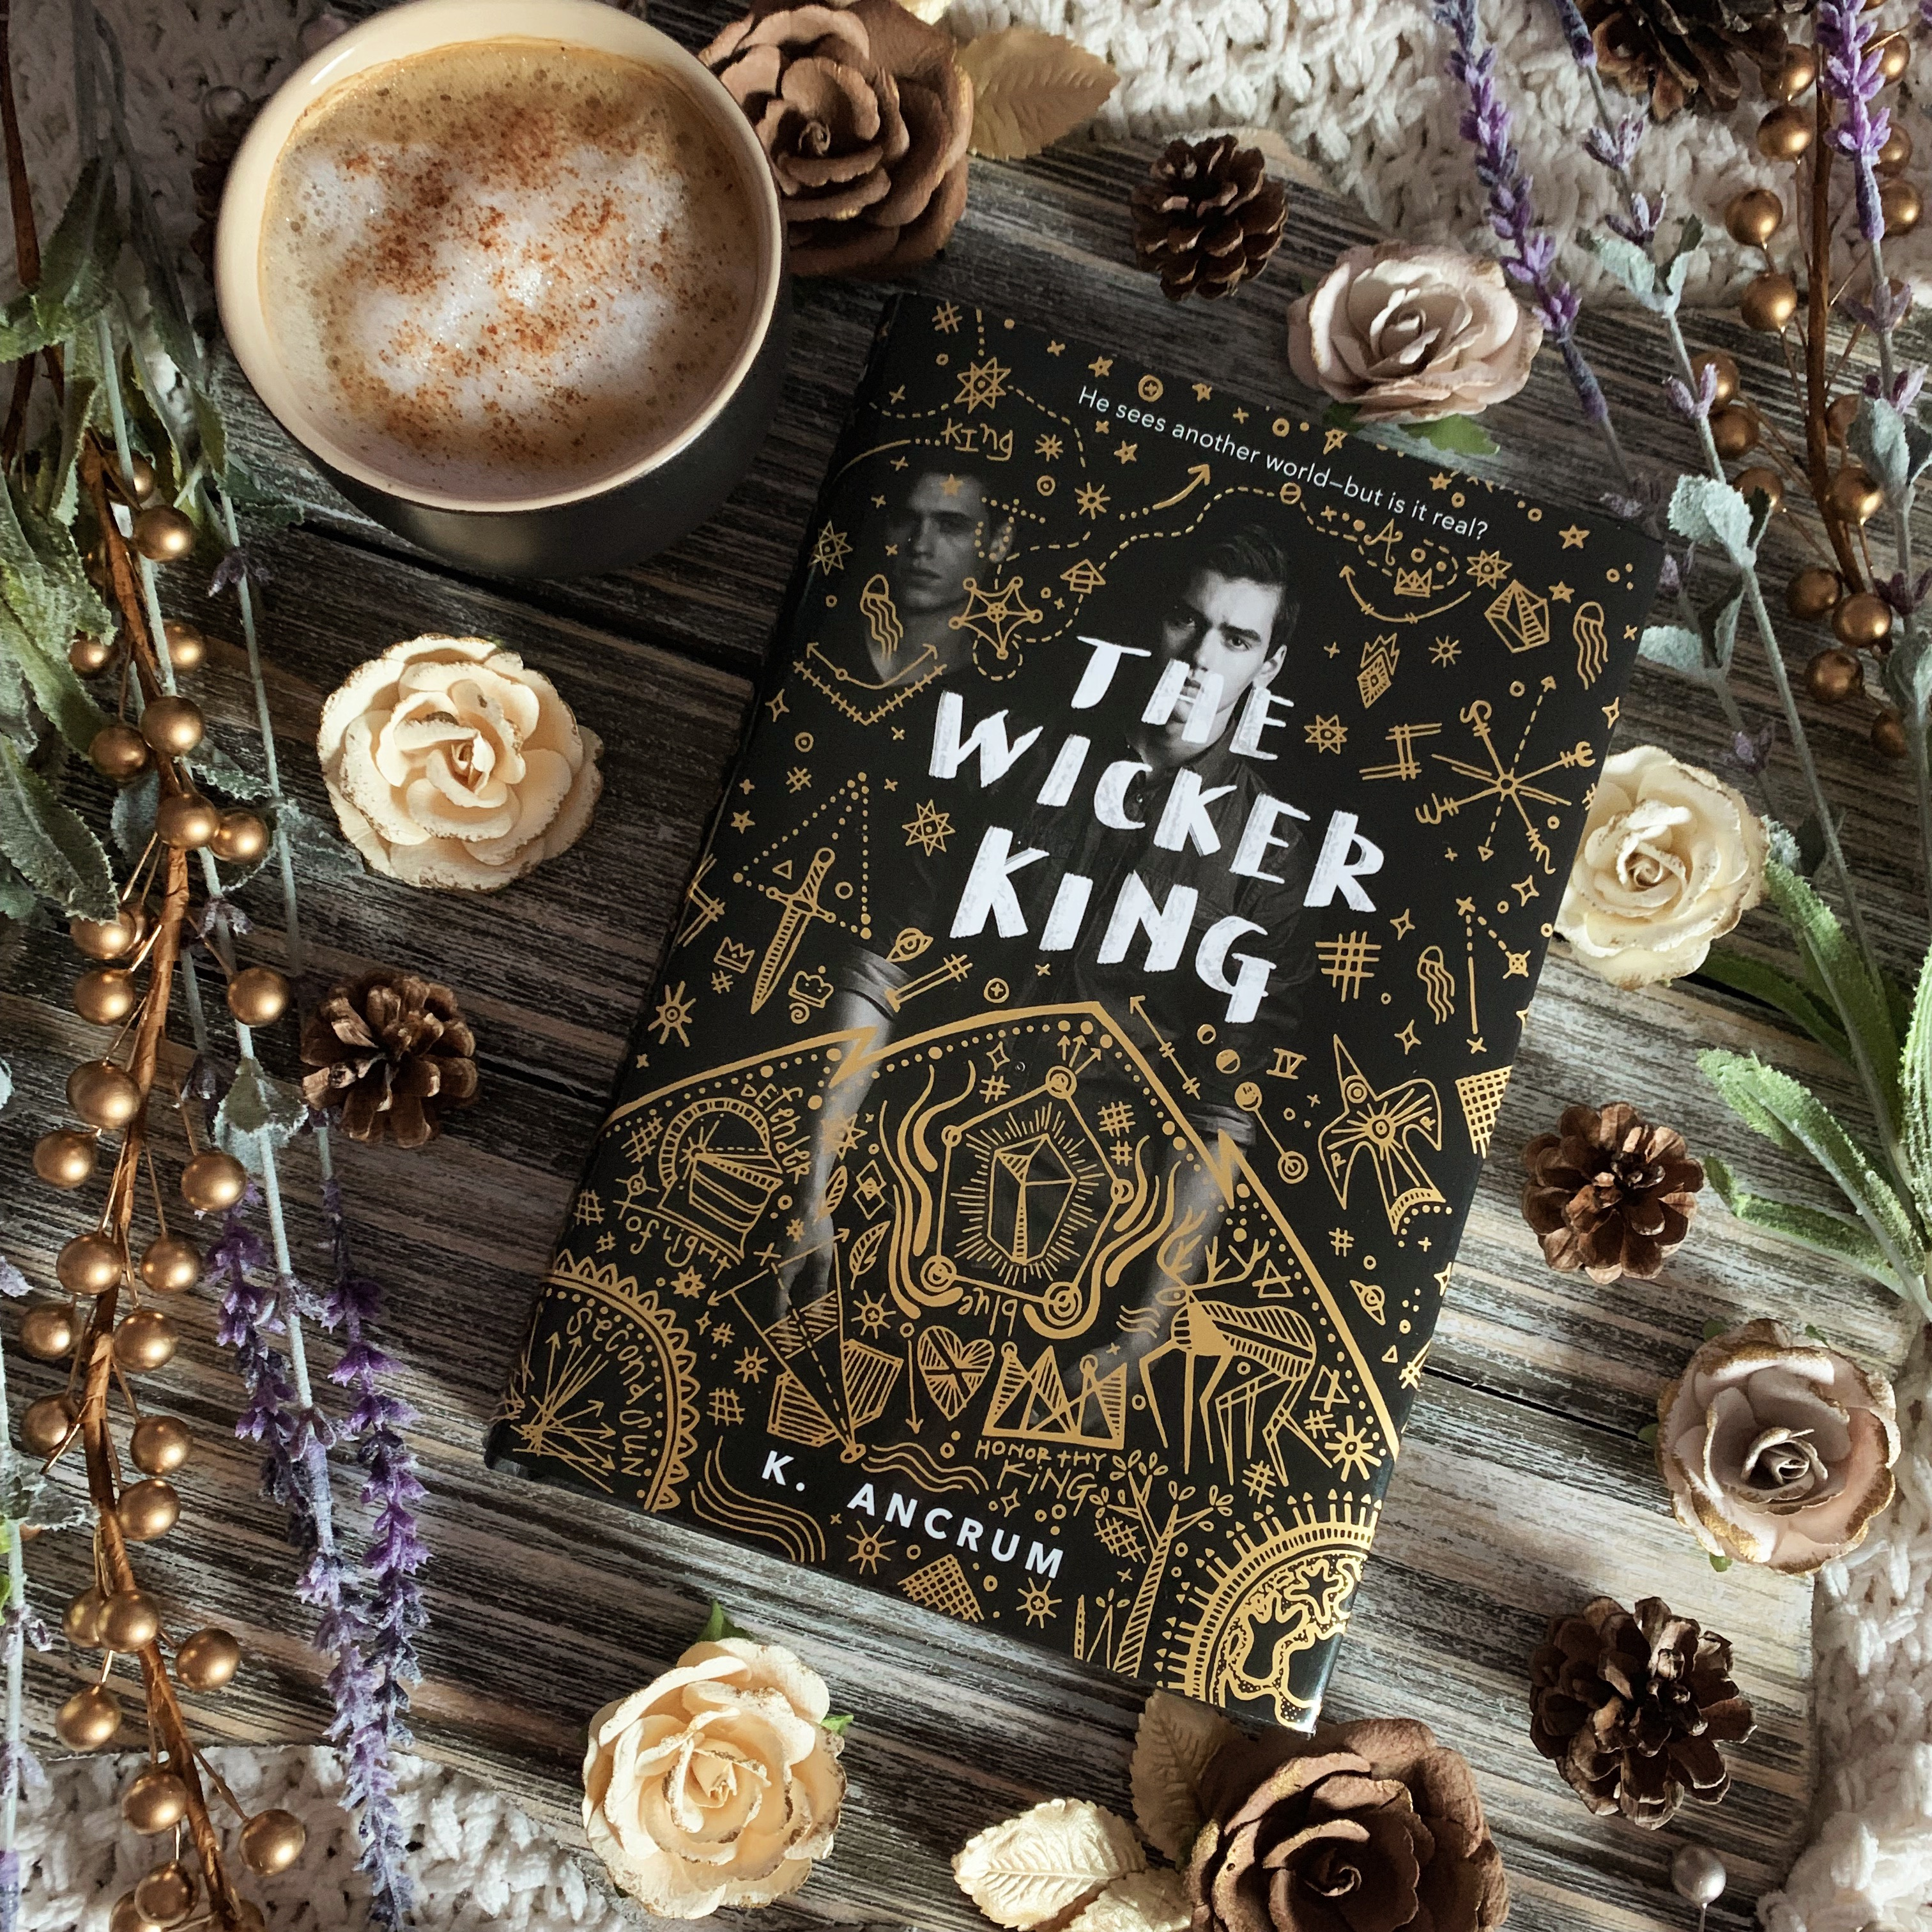 The Wicker King by K. Ancrum | Book Review